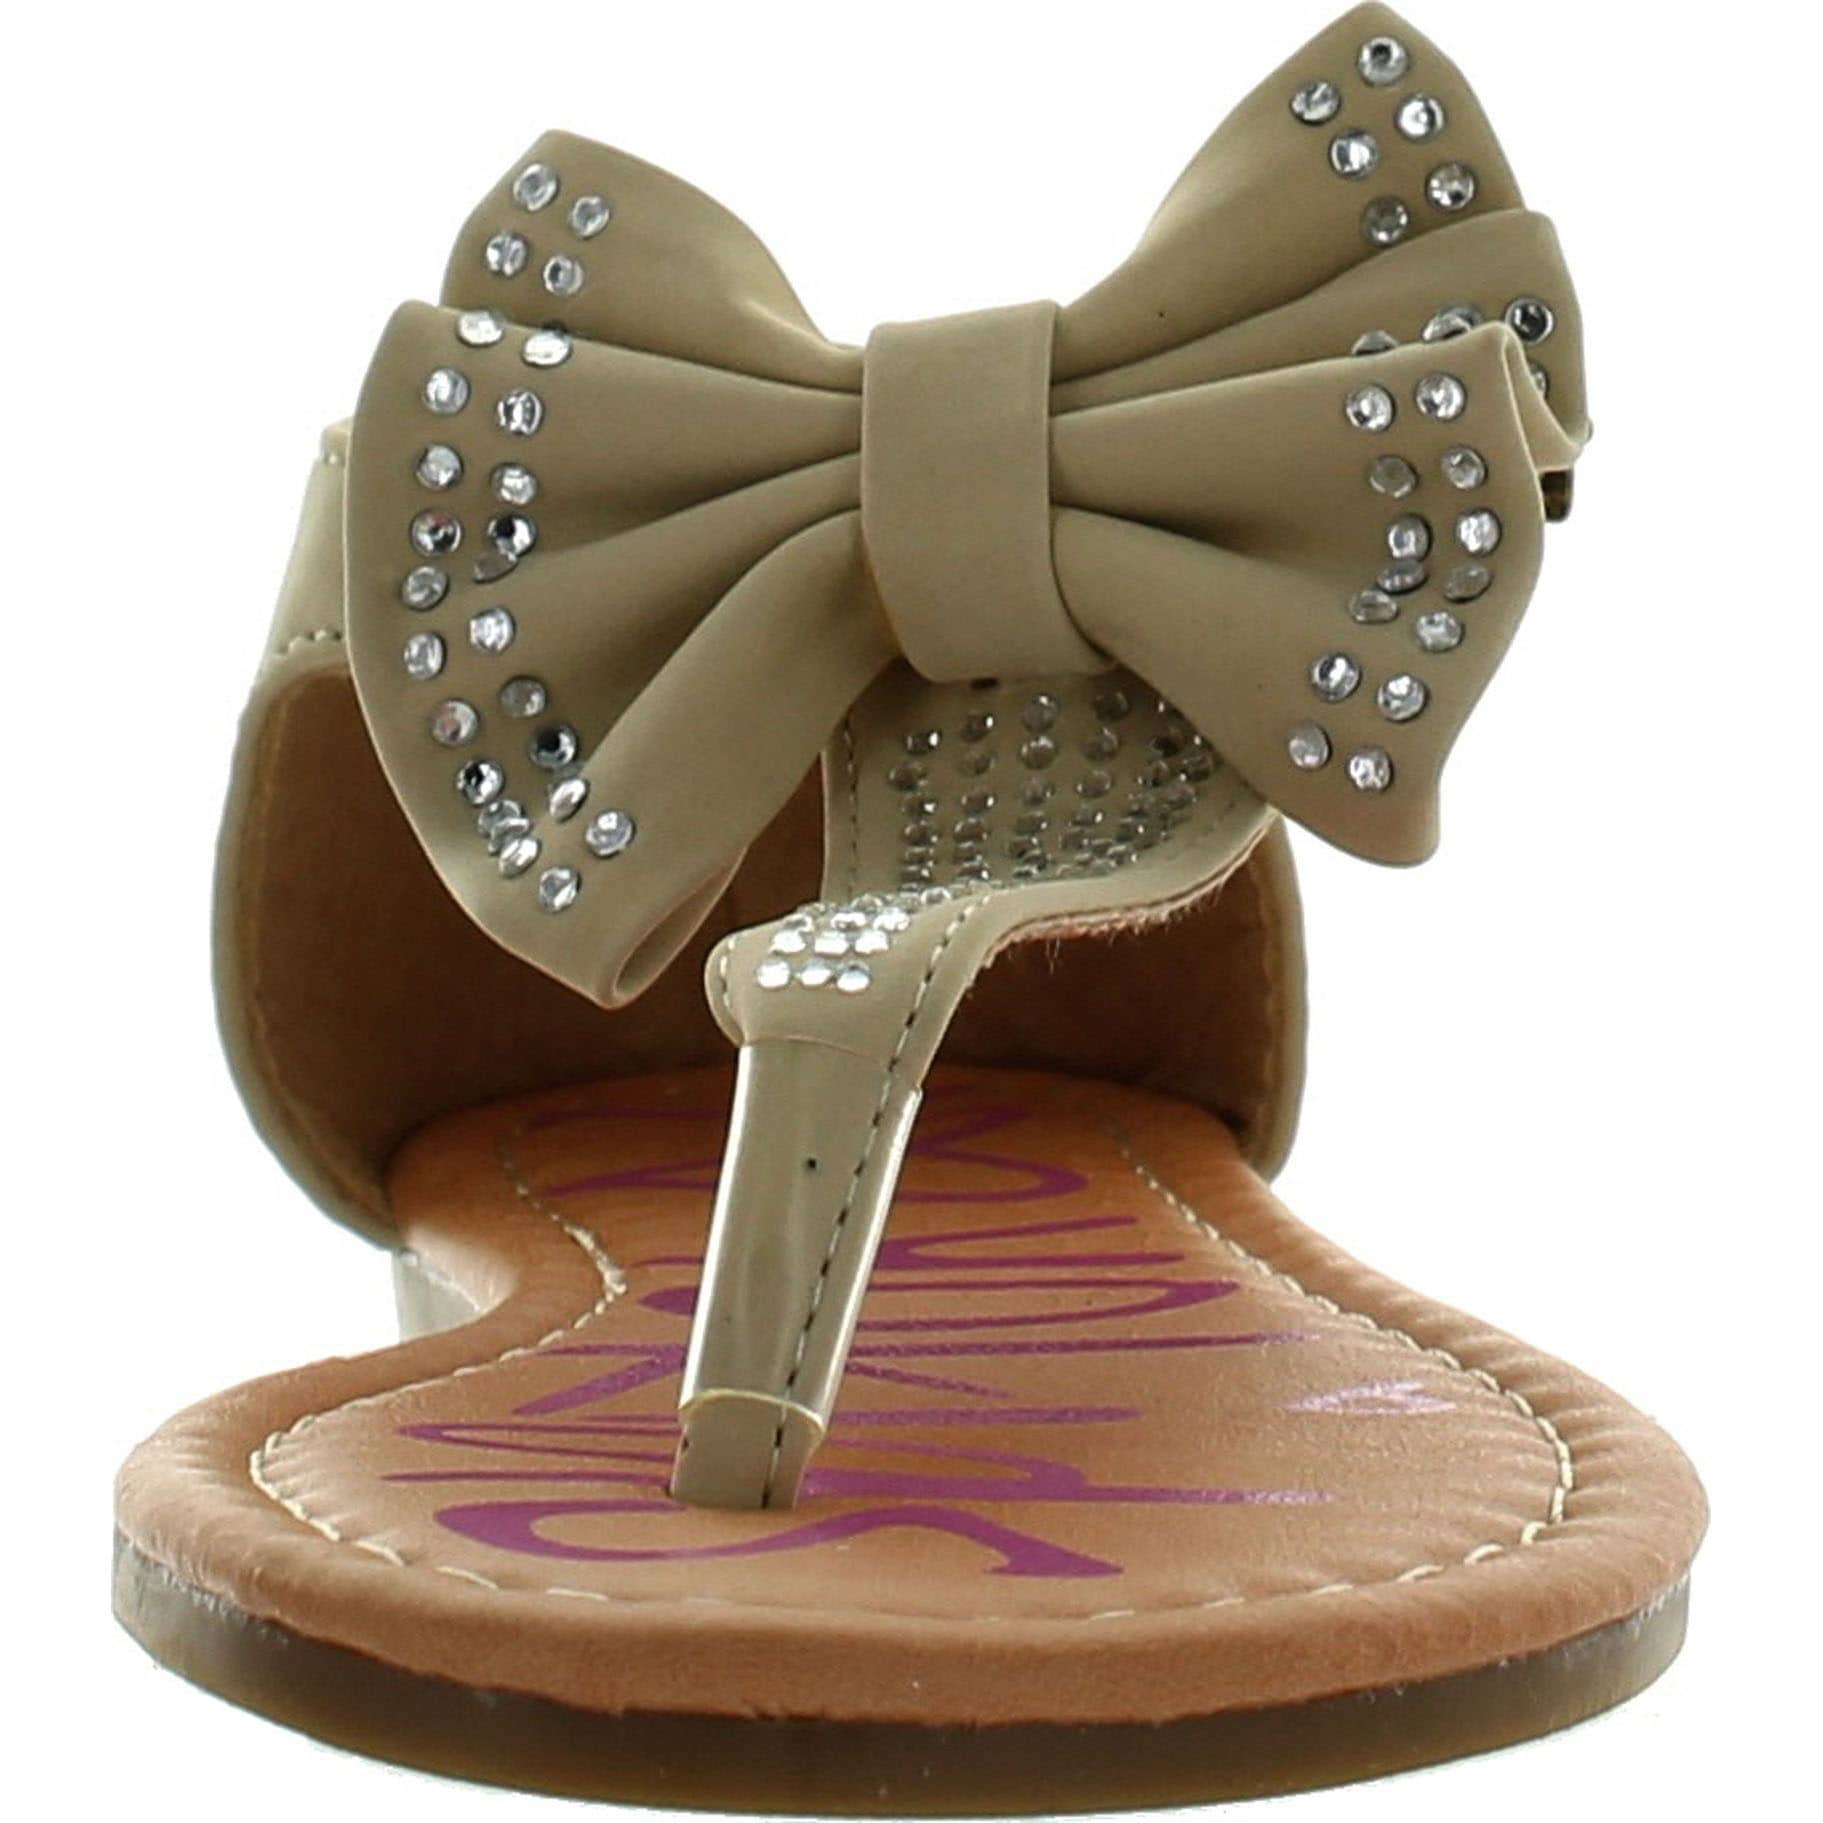 dac47095707 Shop Yokids Amanda-15 Little Girls Flat Thong Sandals With Bow And  Rhinestones - Free Shipping On Orders Over  45 - Overstock - 14381649